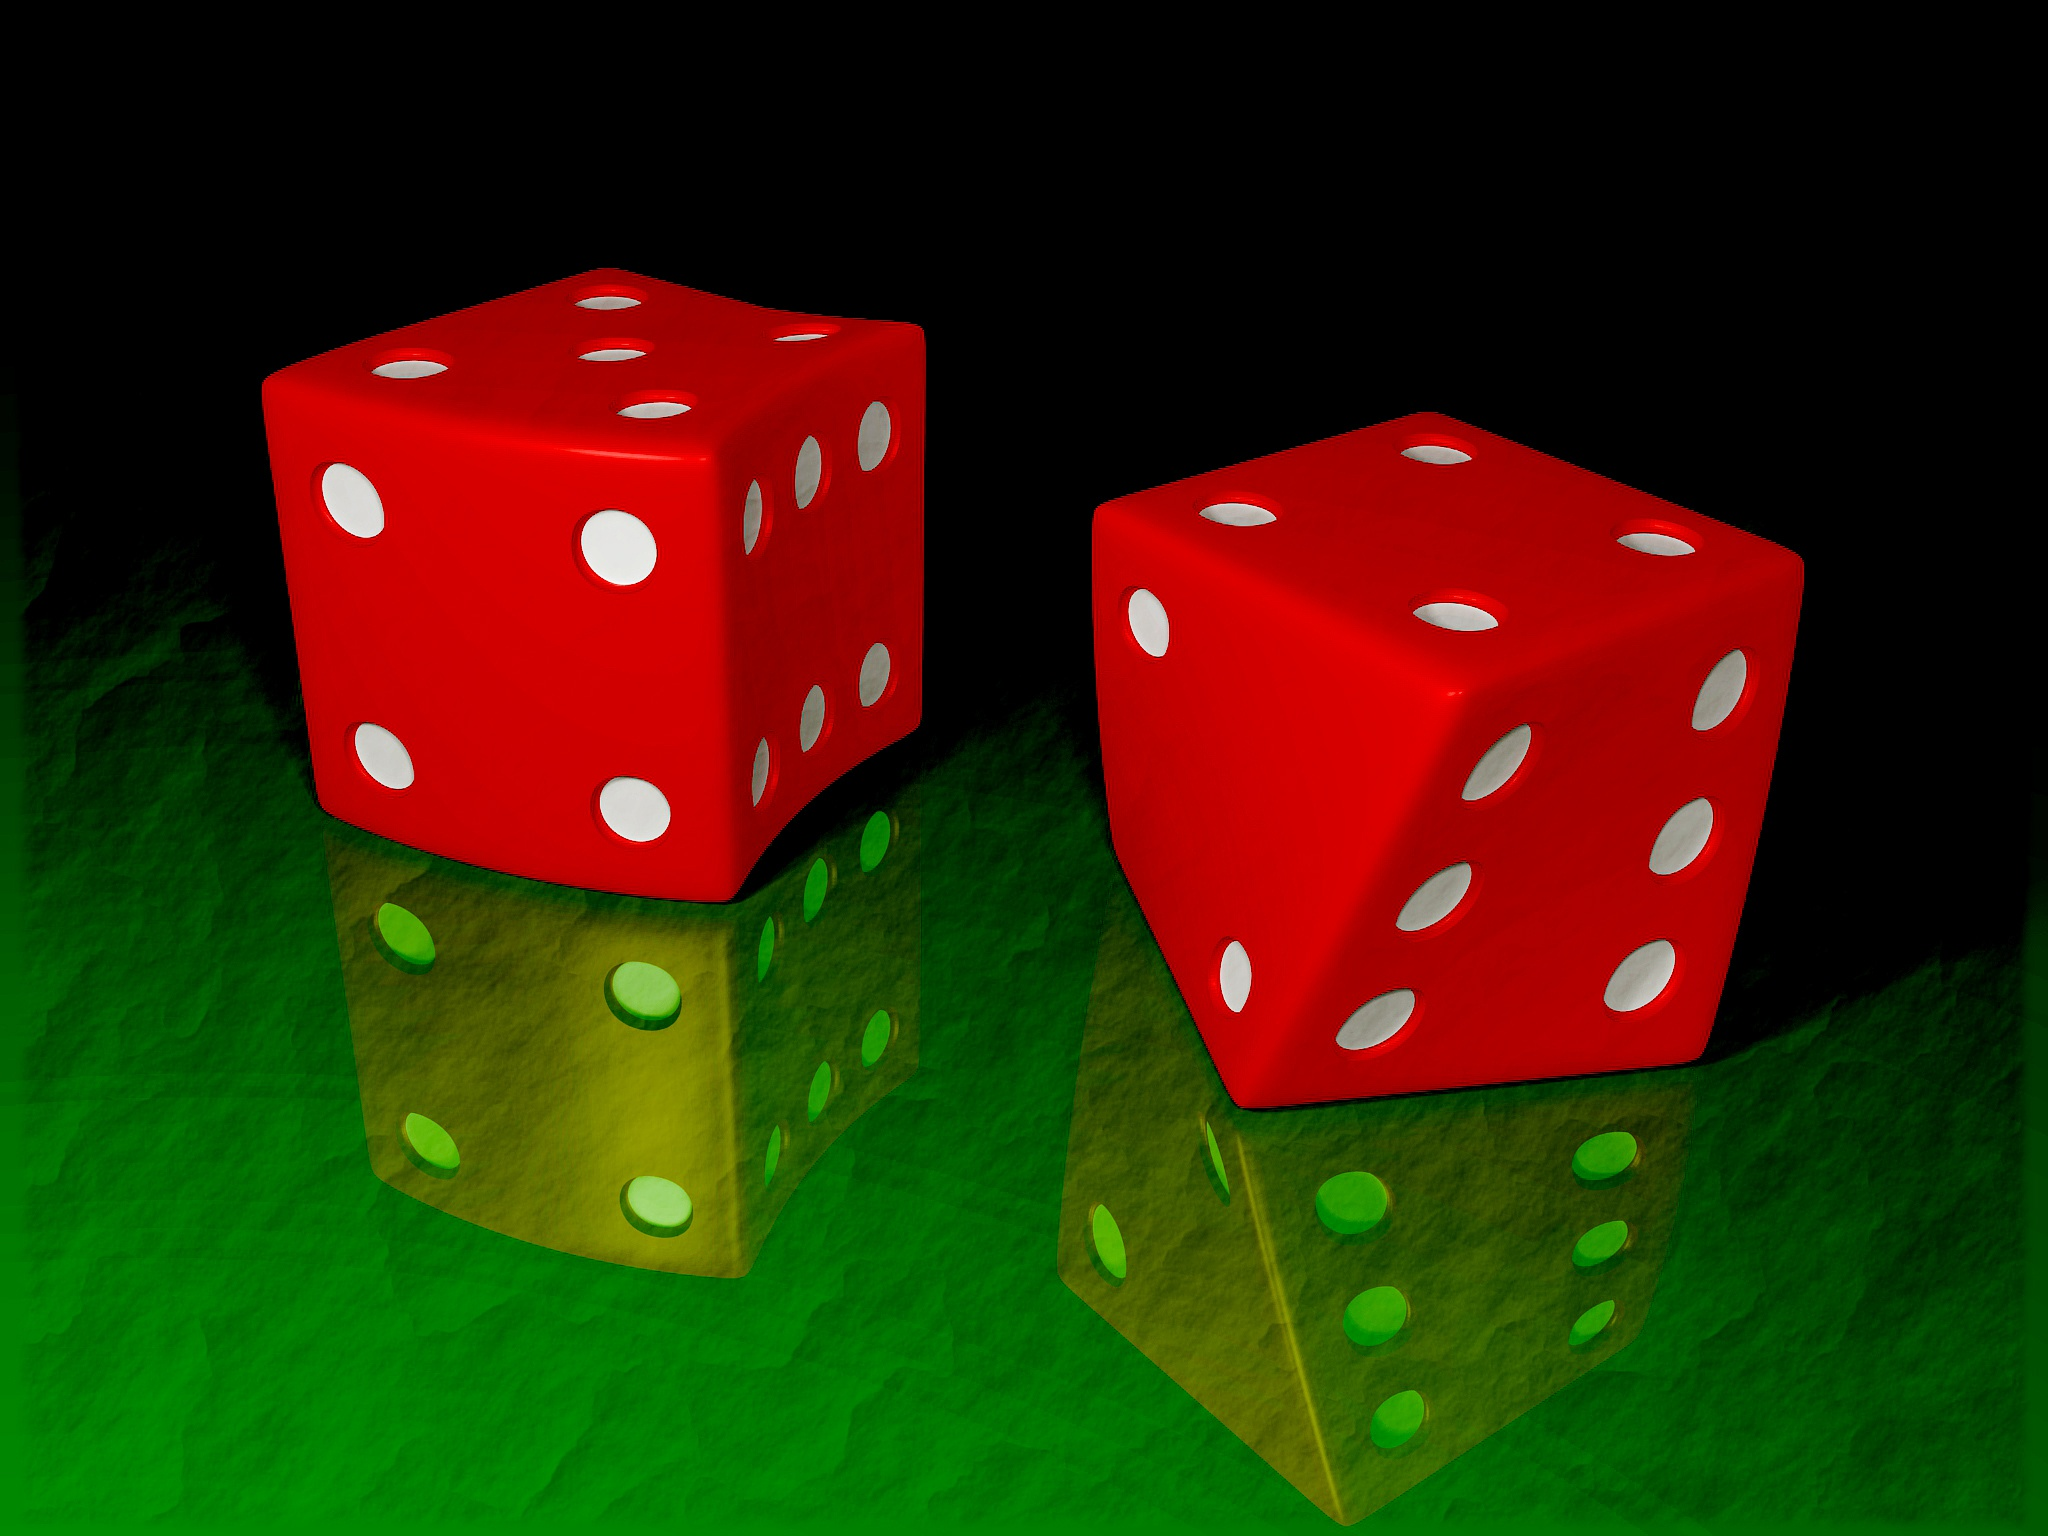 Just a through of the dice by Joe-Maccer